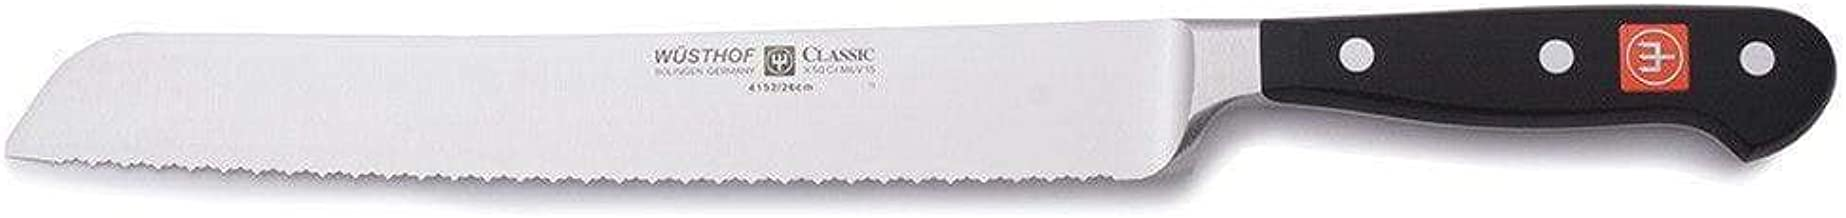 Wusthof 4152-7/26 CLASSIC Bread Knife, One Size, Black, Stainless Steel